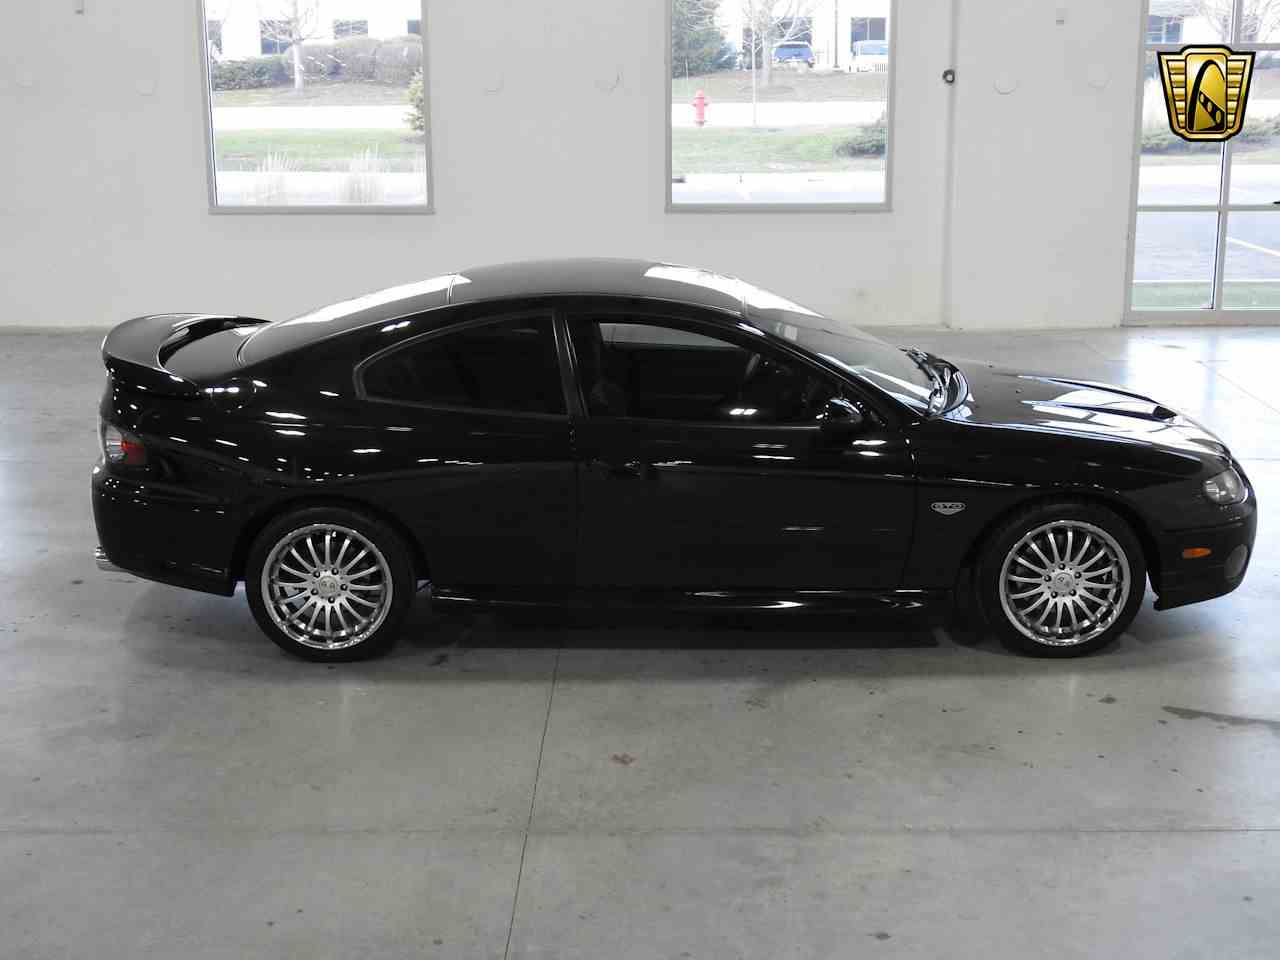 Large Picture of 2006 Pontiac GTO located in Wisconsin Offered by Gateway Classic Cars - Milwaukee - ME4U